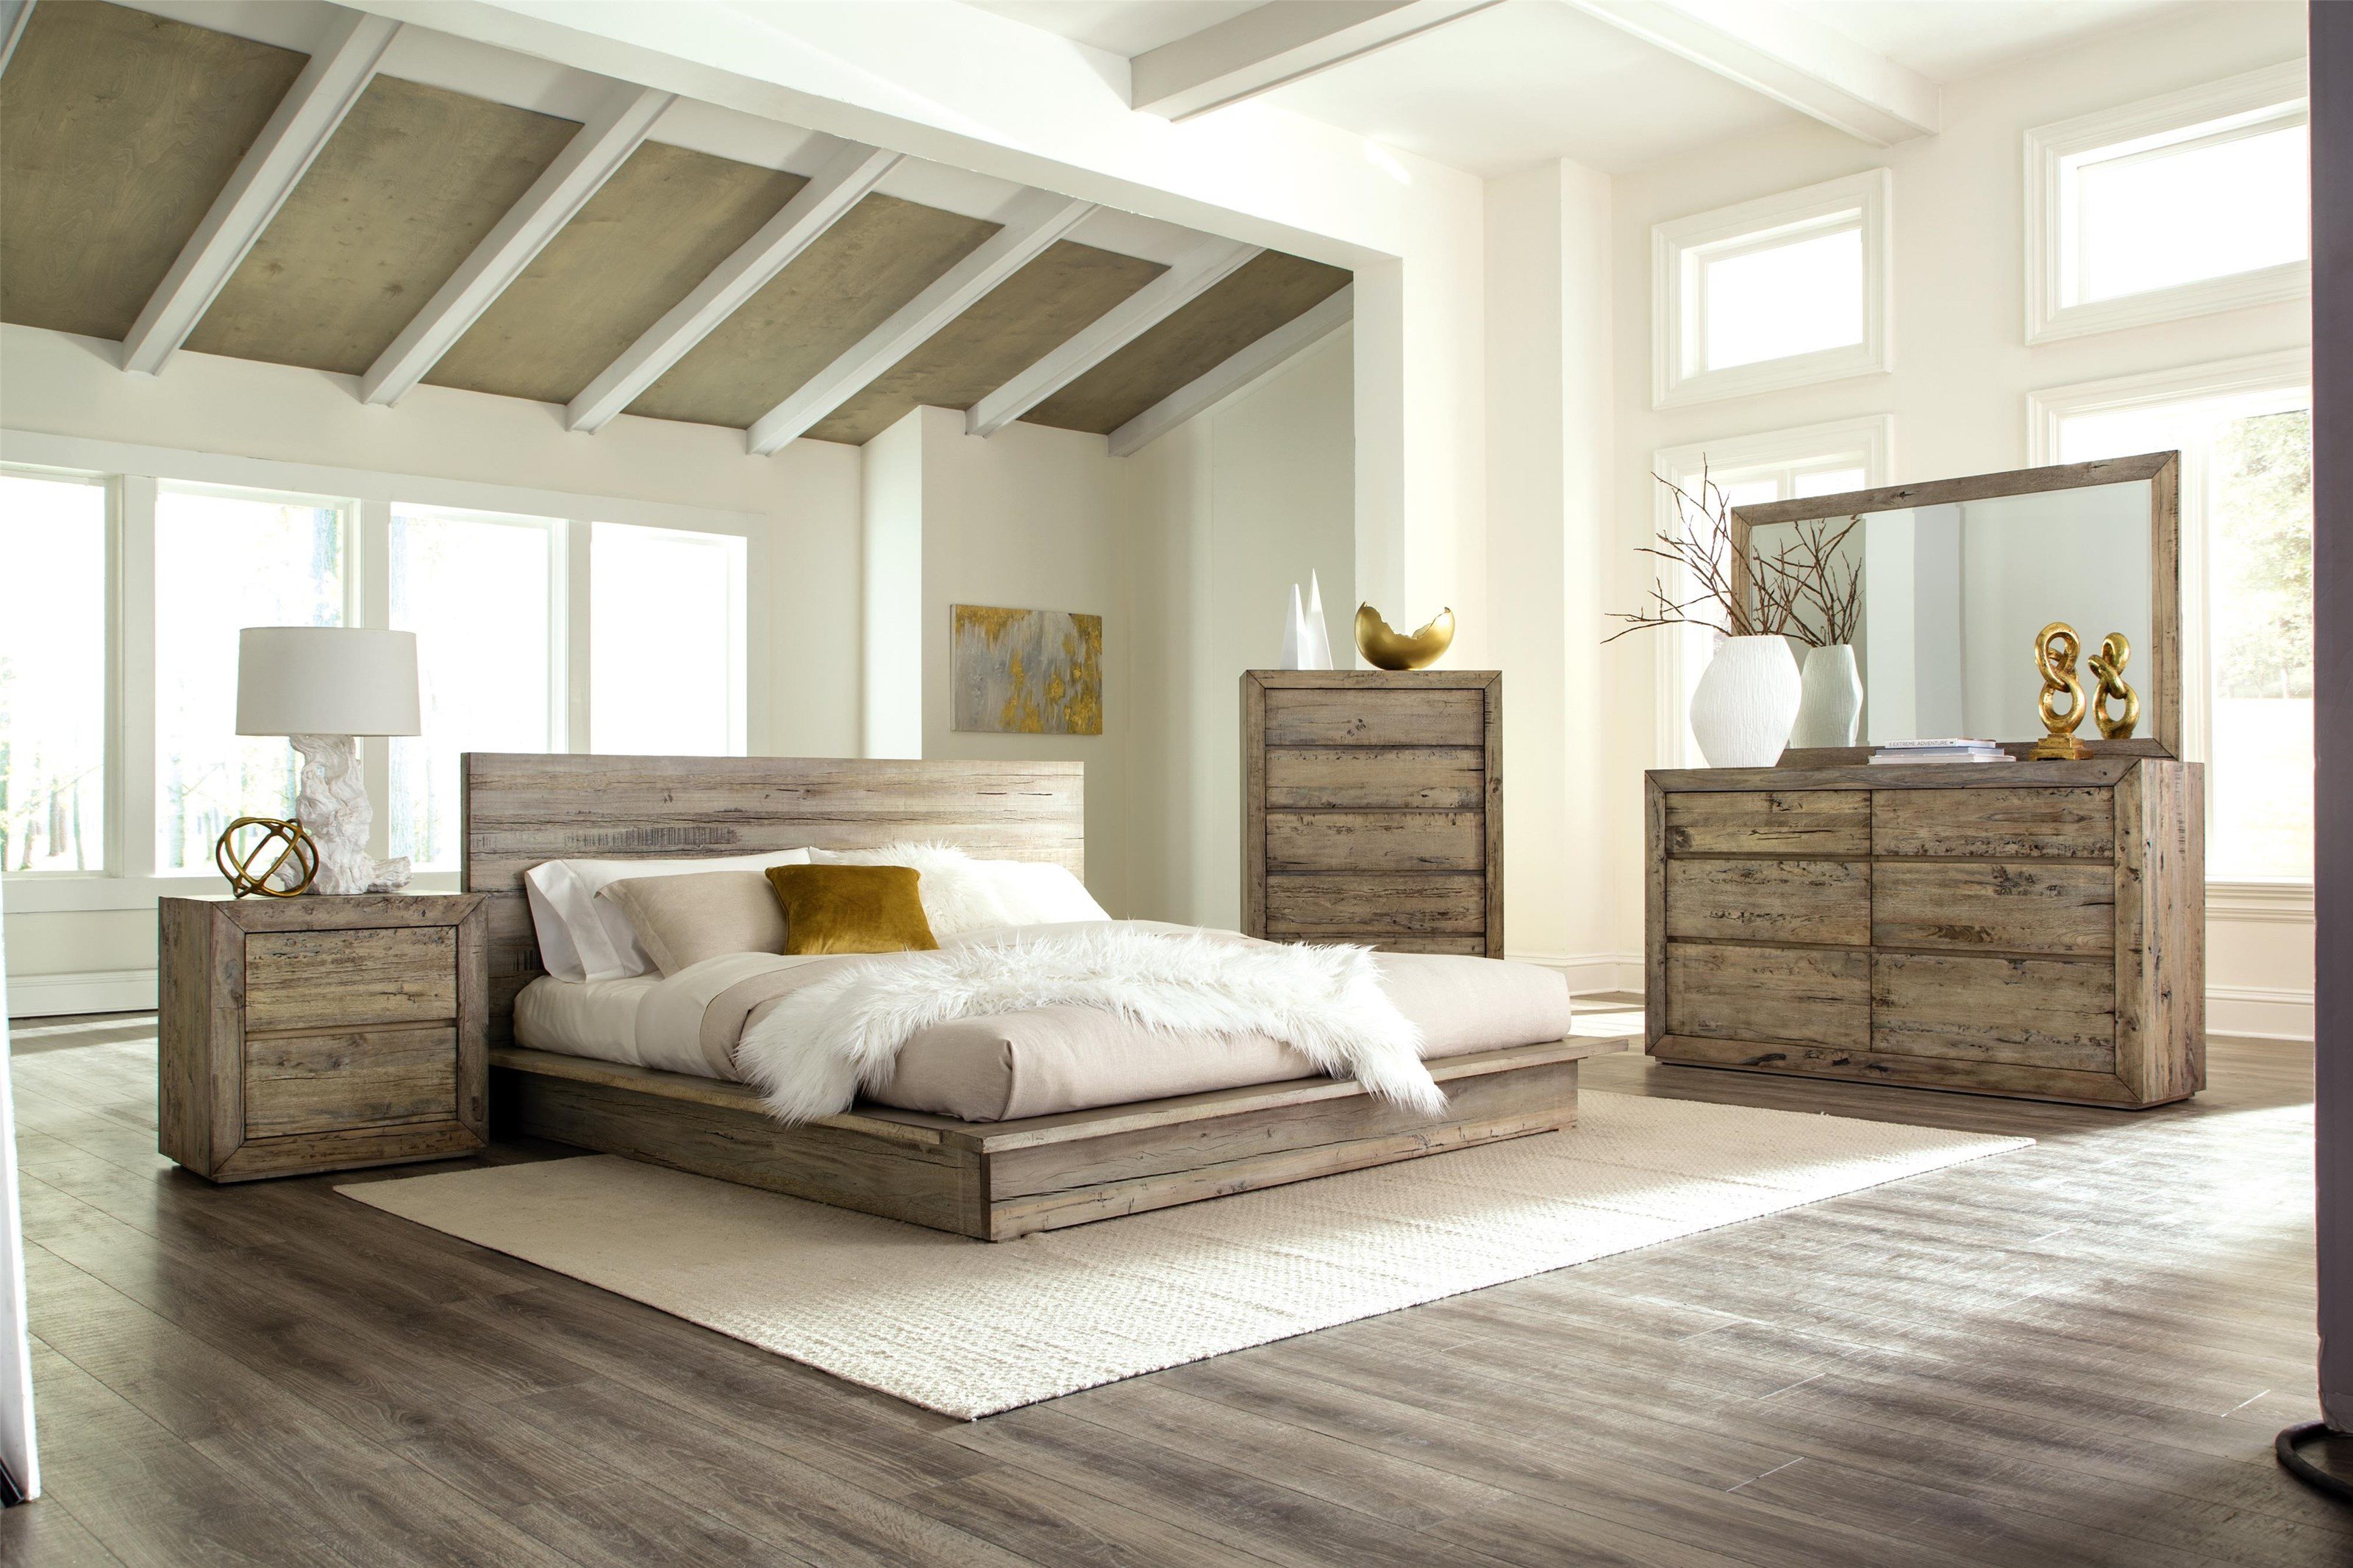 Napa Furniture Designs Renewal Queen Bed - Item Number: 200-50HFR